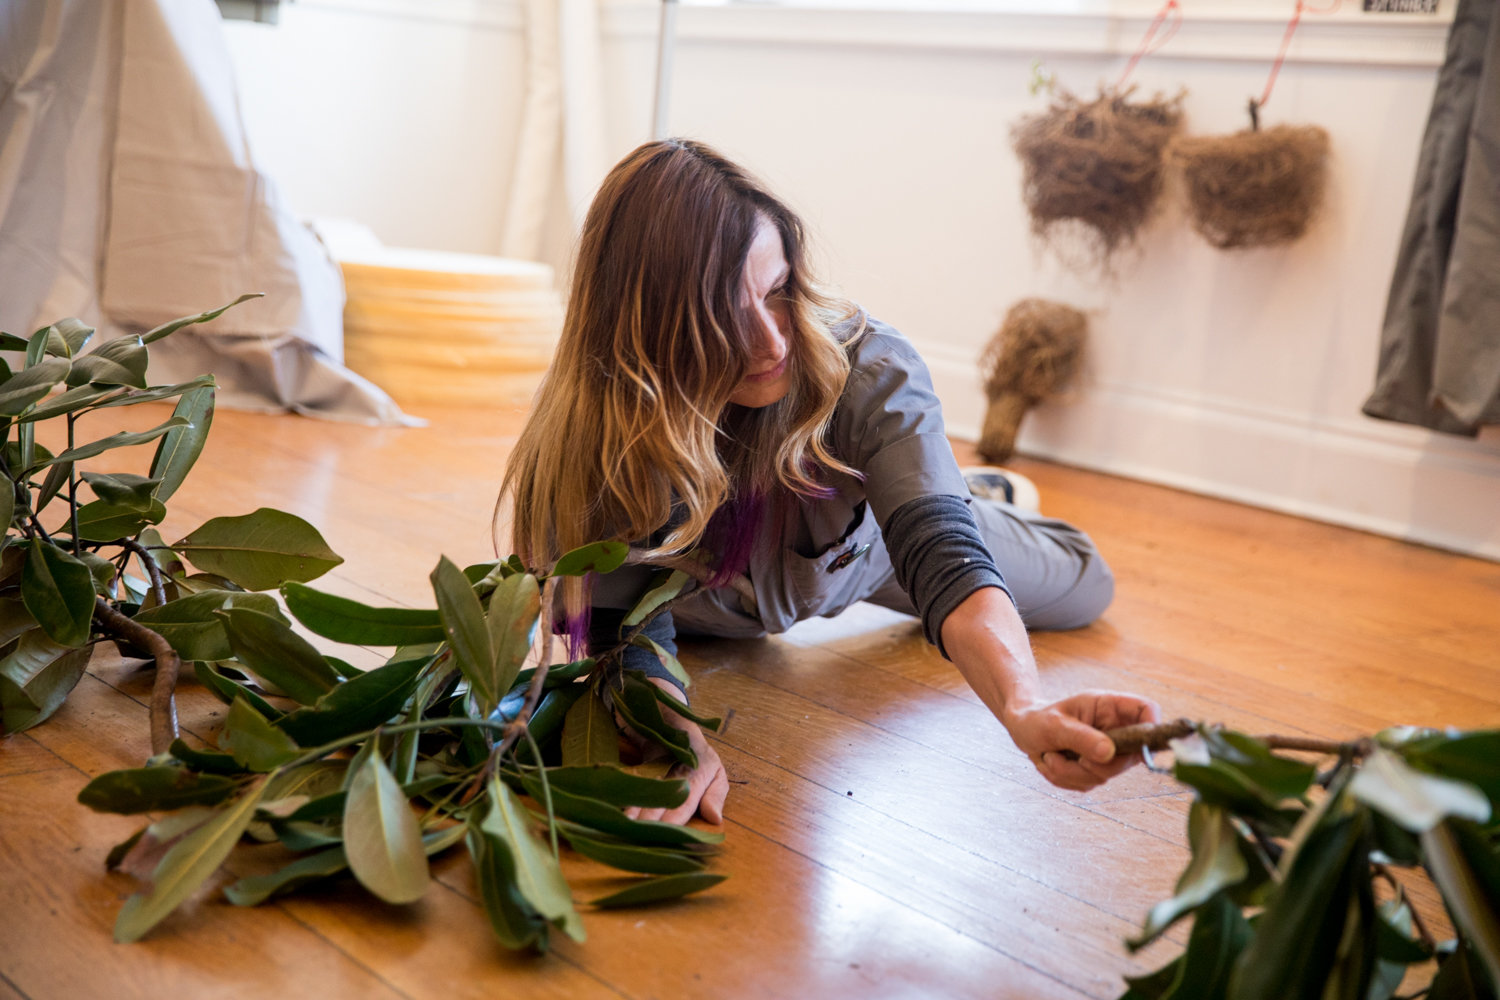 Environmental Performance Agency member Andrea Haenggi works on her performance art project for her Winter Workspace residency at Wave Hill.